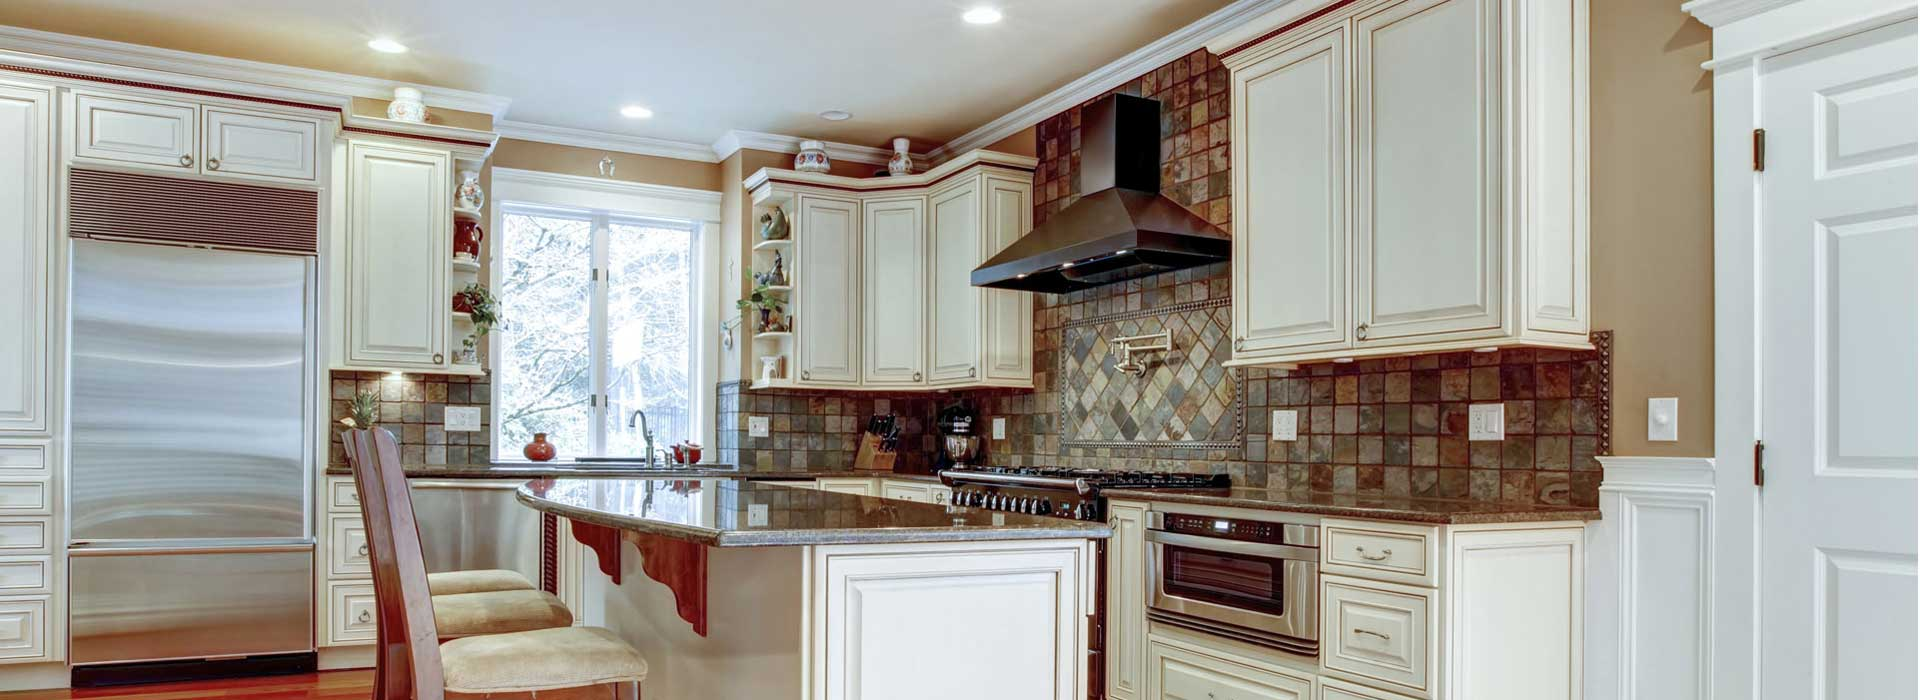 Kitchen Design Queens Ny new look kitchen cabinet refacing » kitchen cabinet refacing queens ny